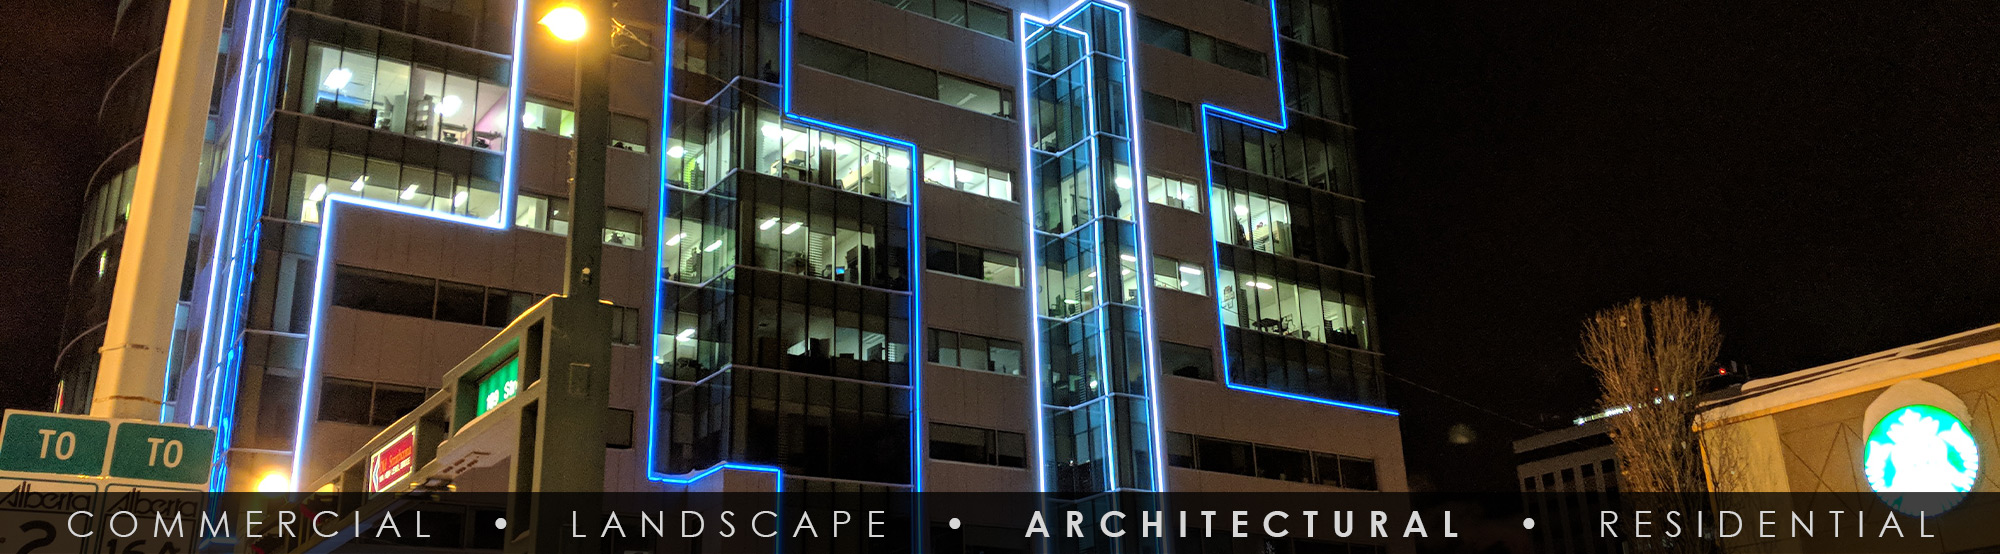 SGi LED Architectural Facade Lighting WSP Building